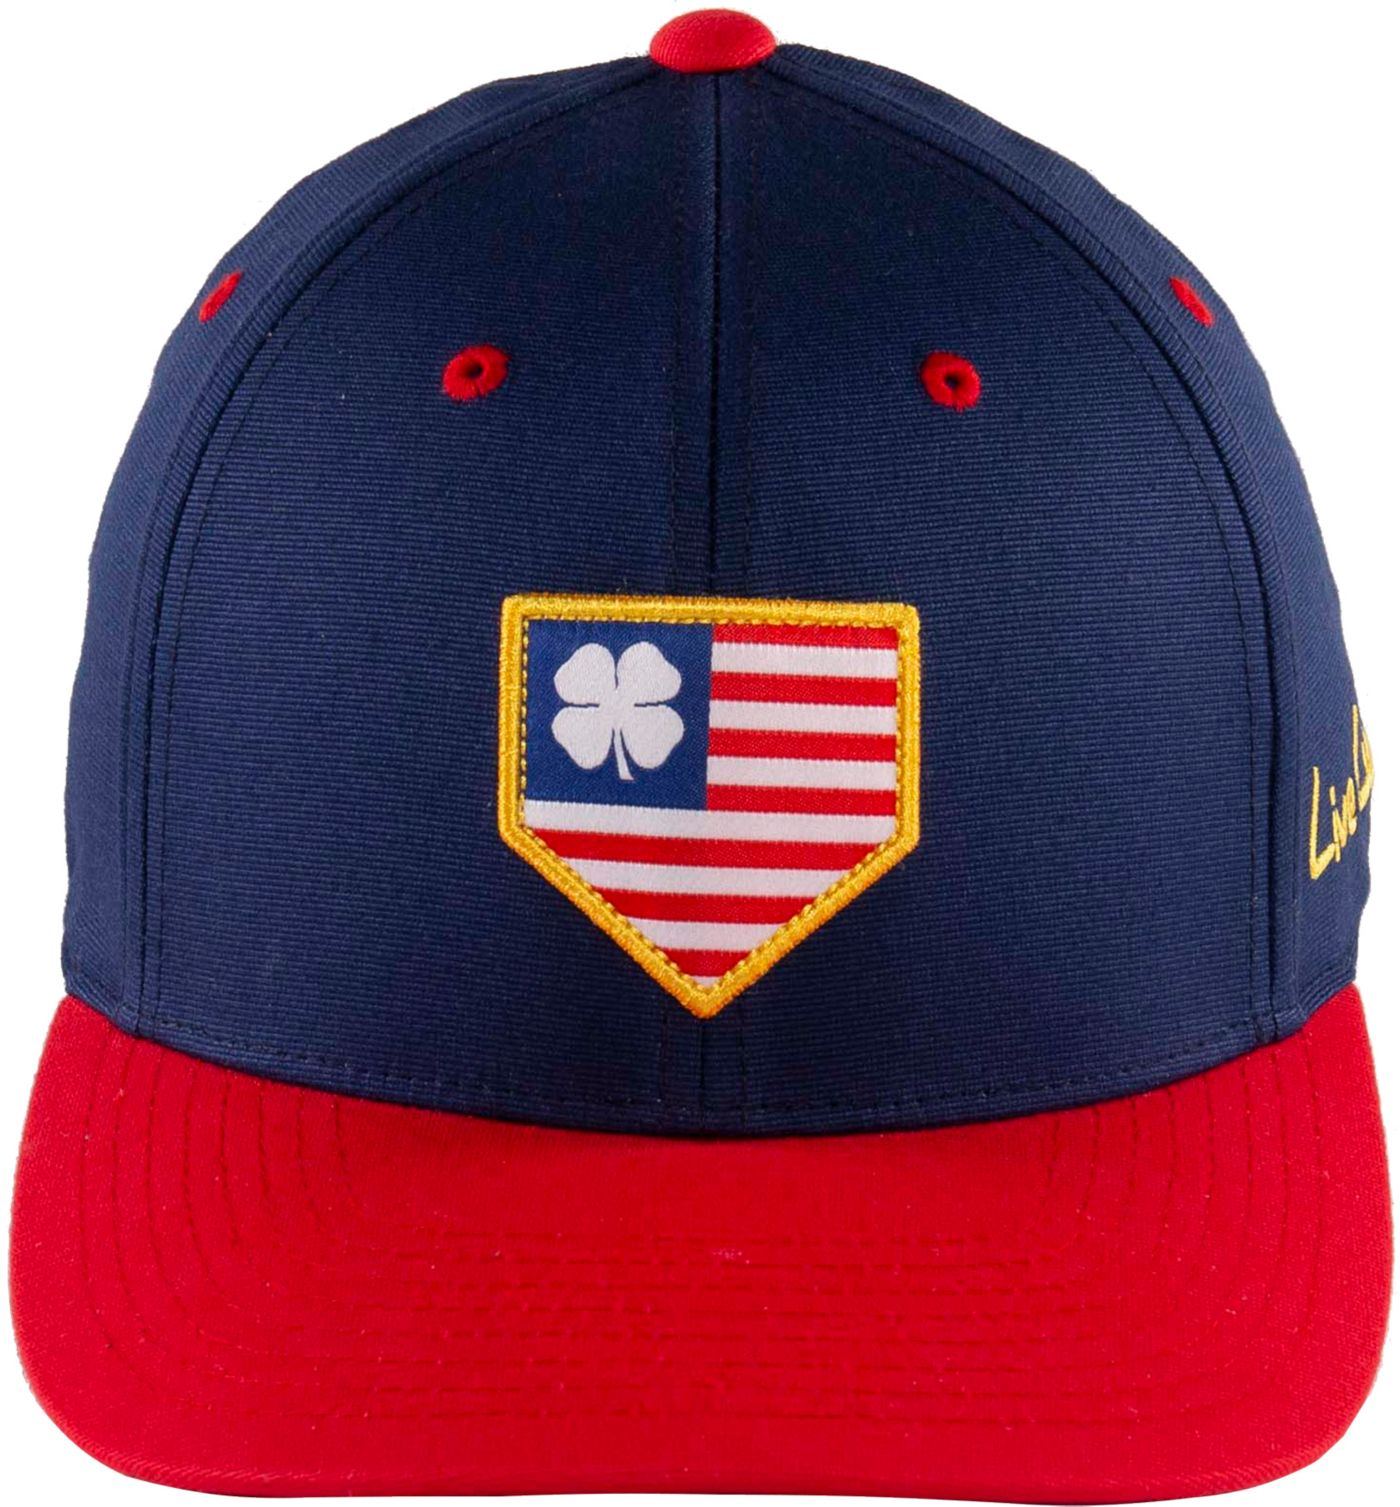 Black Clover + Rawlings USA Fitted Hat